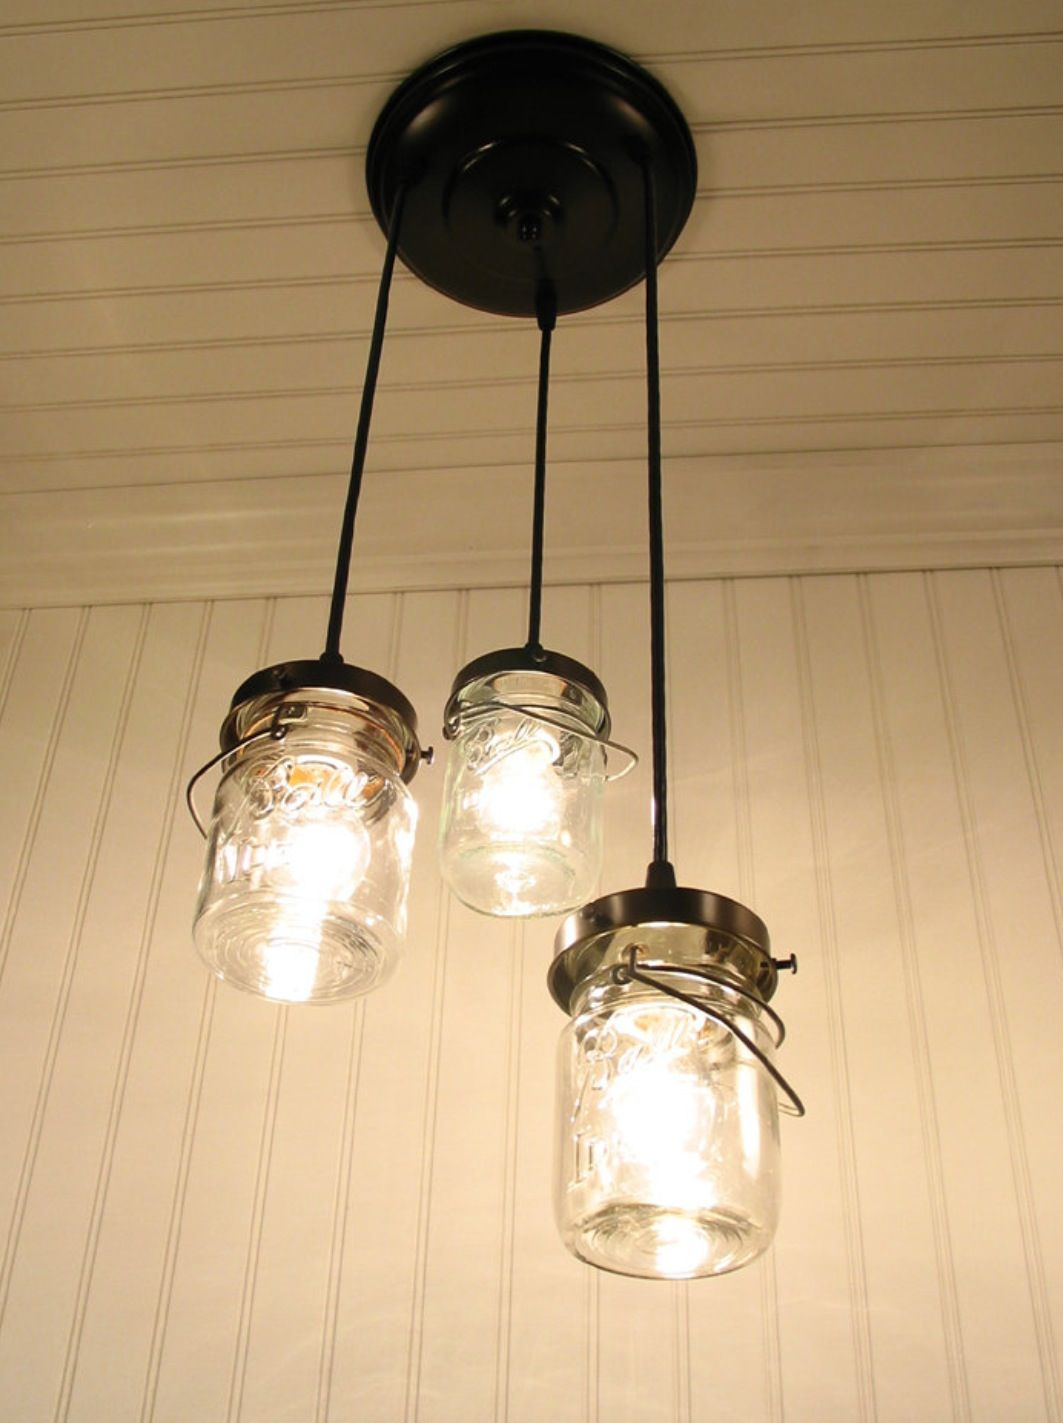 Cool chandelier etsy create pinterest chandeliers cabin and cool chandelier etsy canning jar aloadofball Gallery